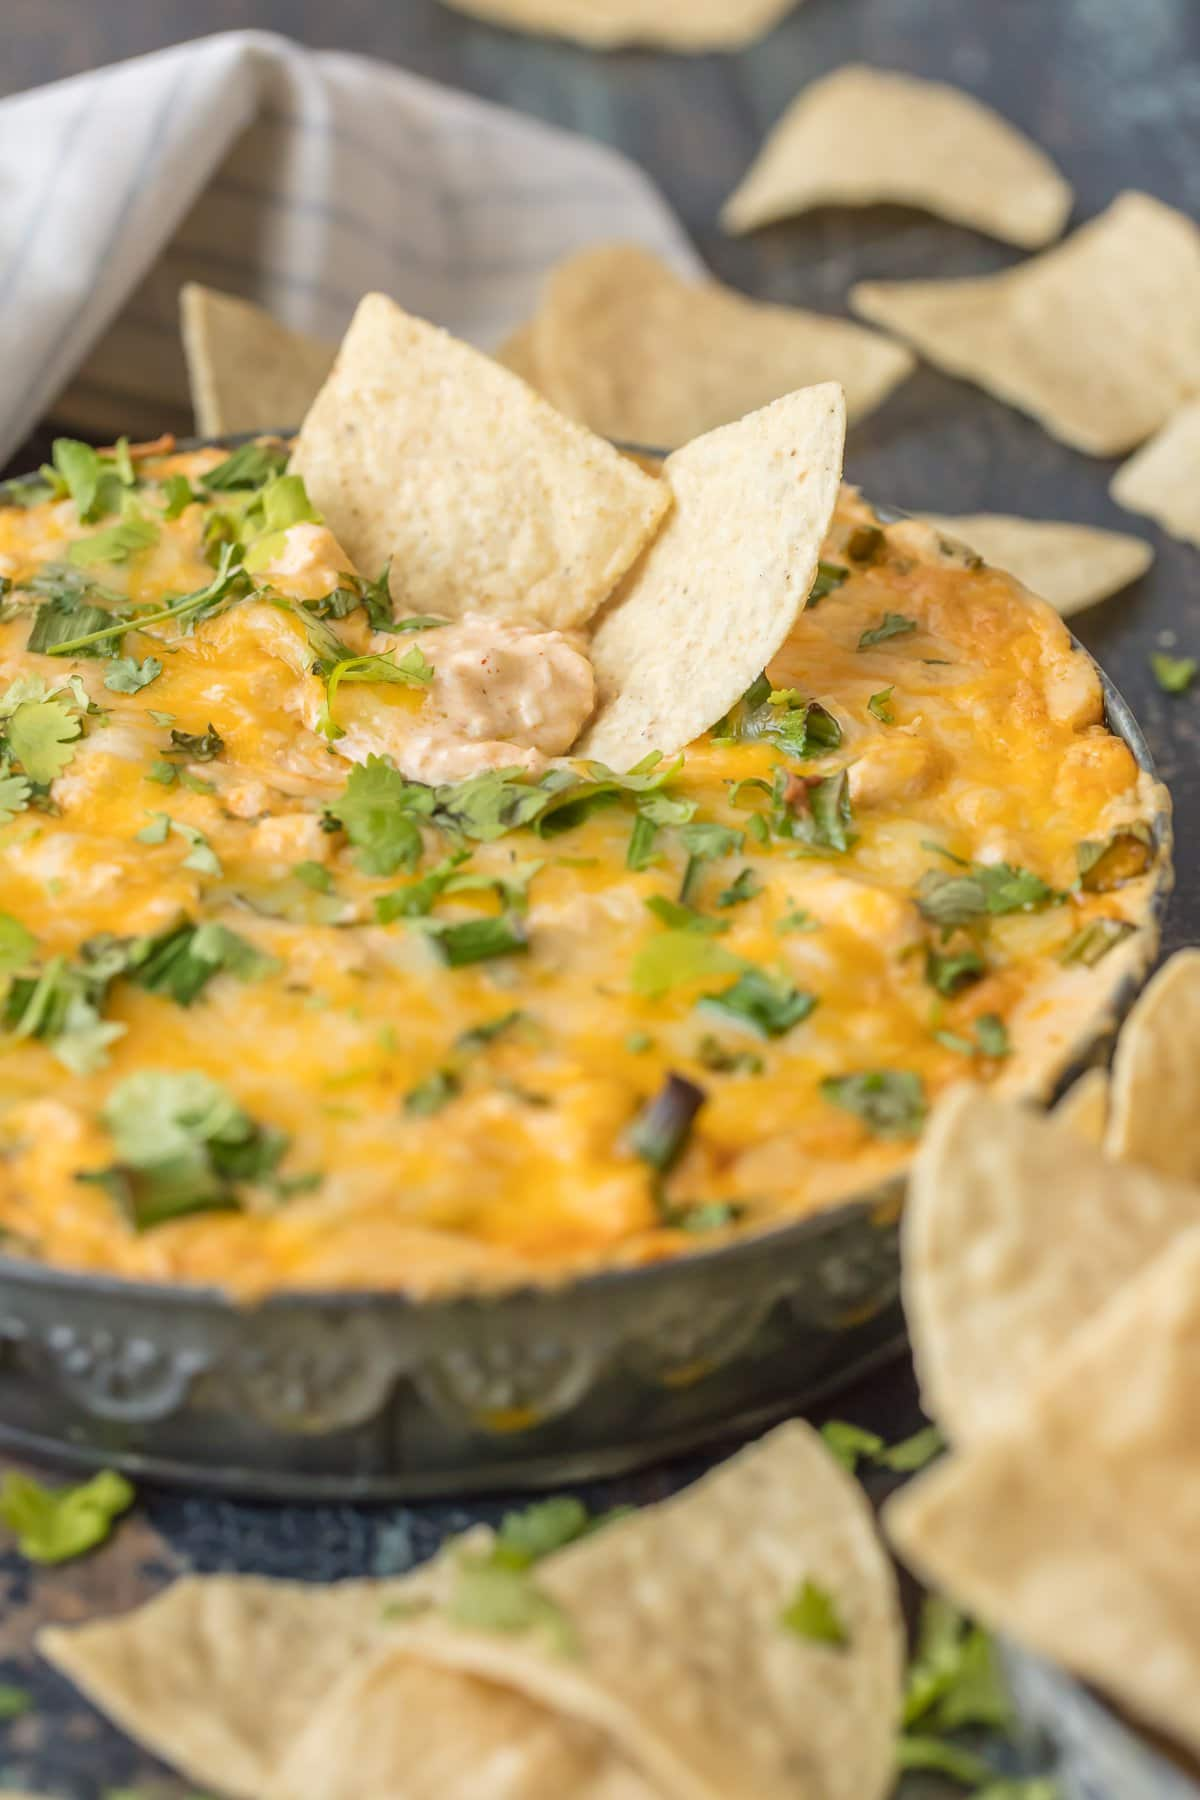 Two tortilla chips dipped into green chile dip